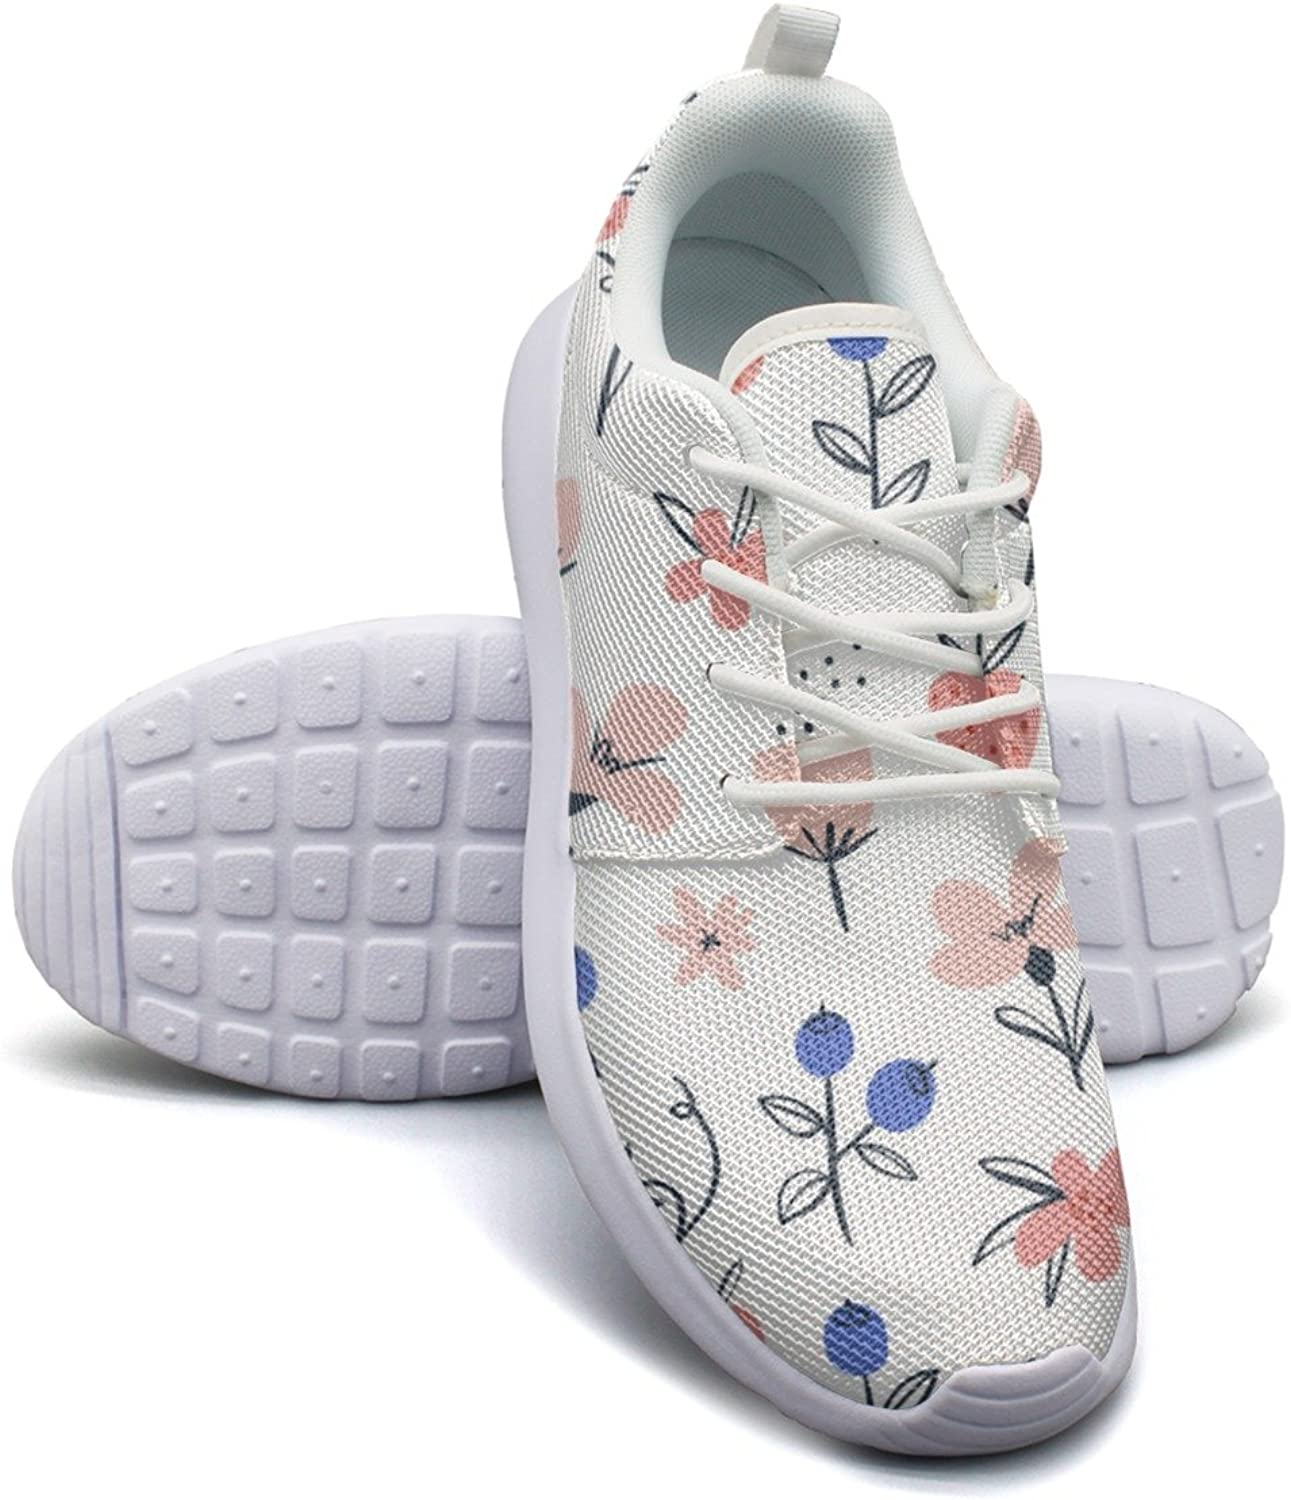 Gjsonmv Abstract Flowers Berries White mesh Lightweight shoes for Women lace up Sports Athletic Sneakers shoes